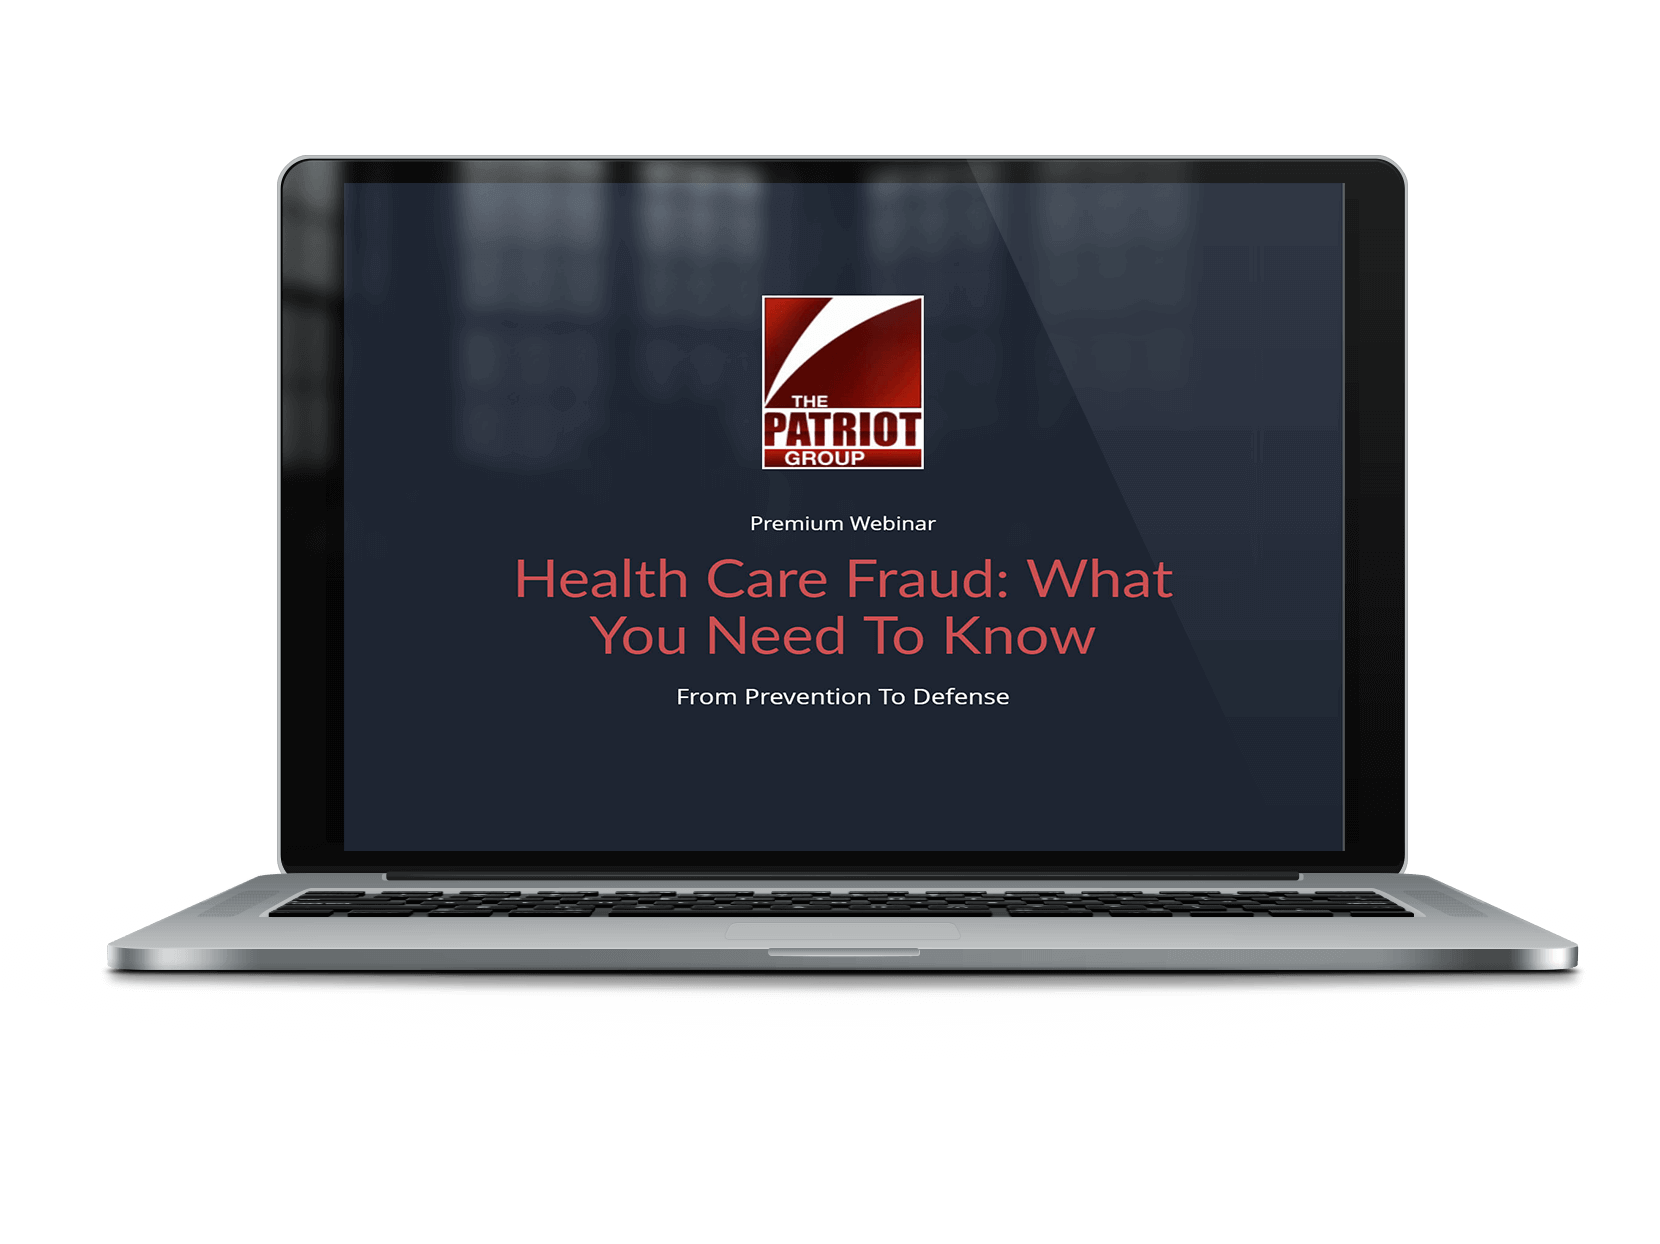 Important Updates on Fraud Investigations against Healthcare Providers